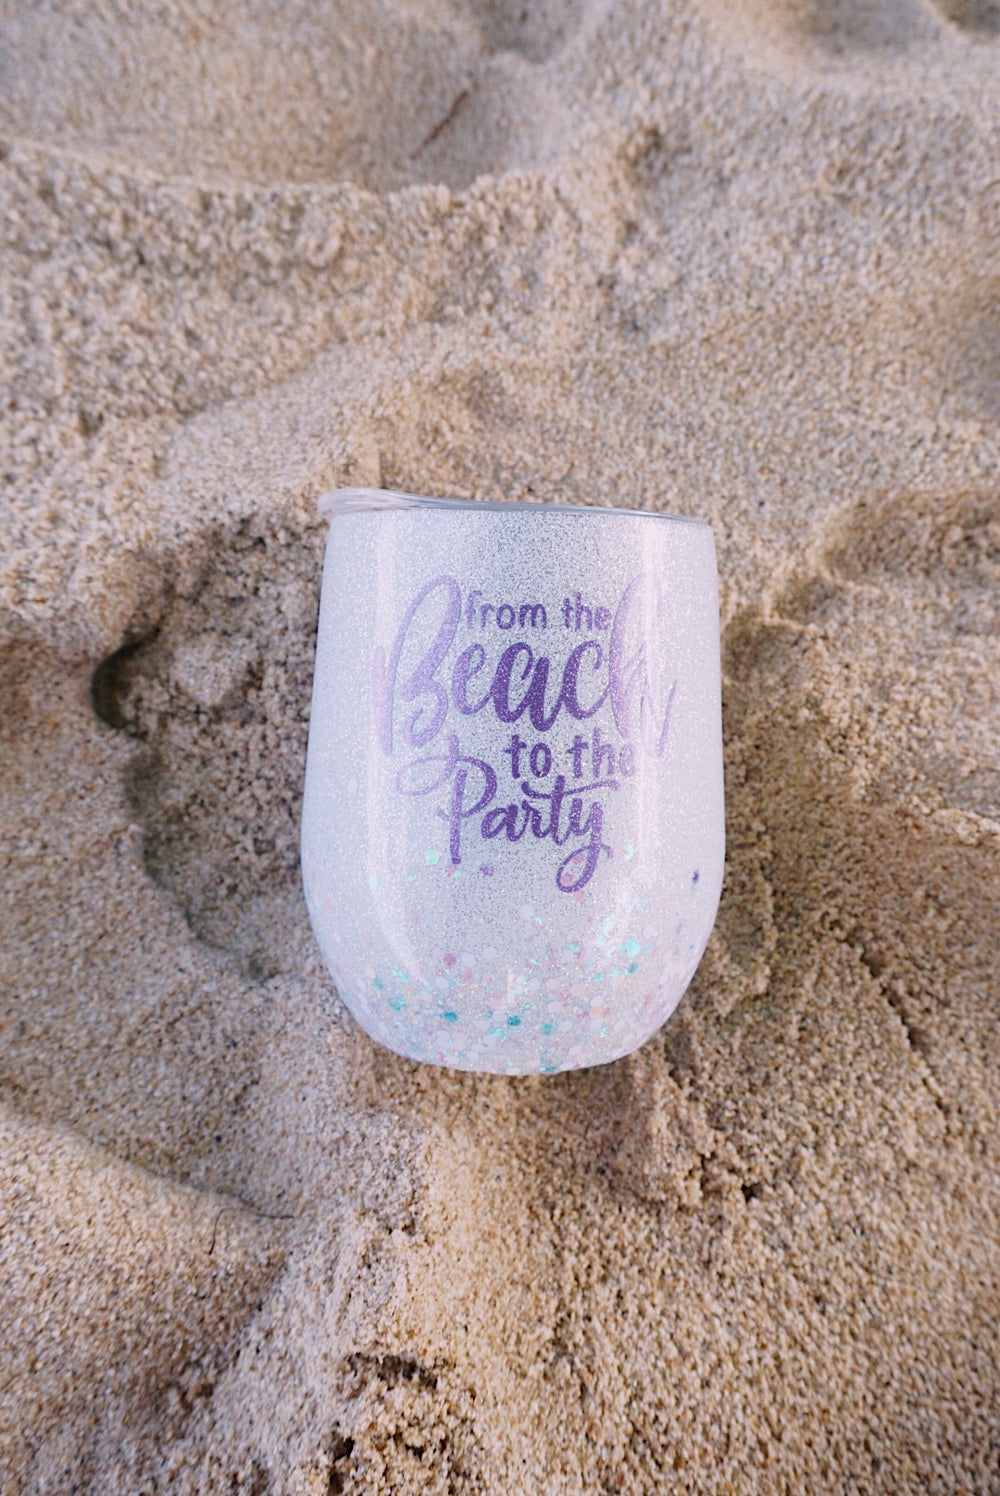 marena's details - from the beach to the party cup white